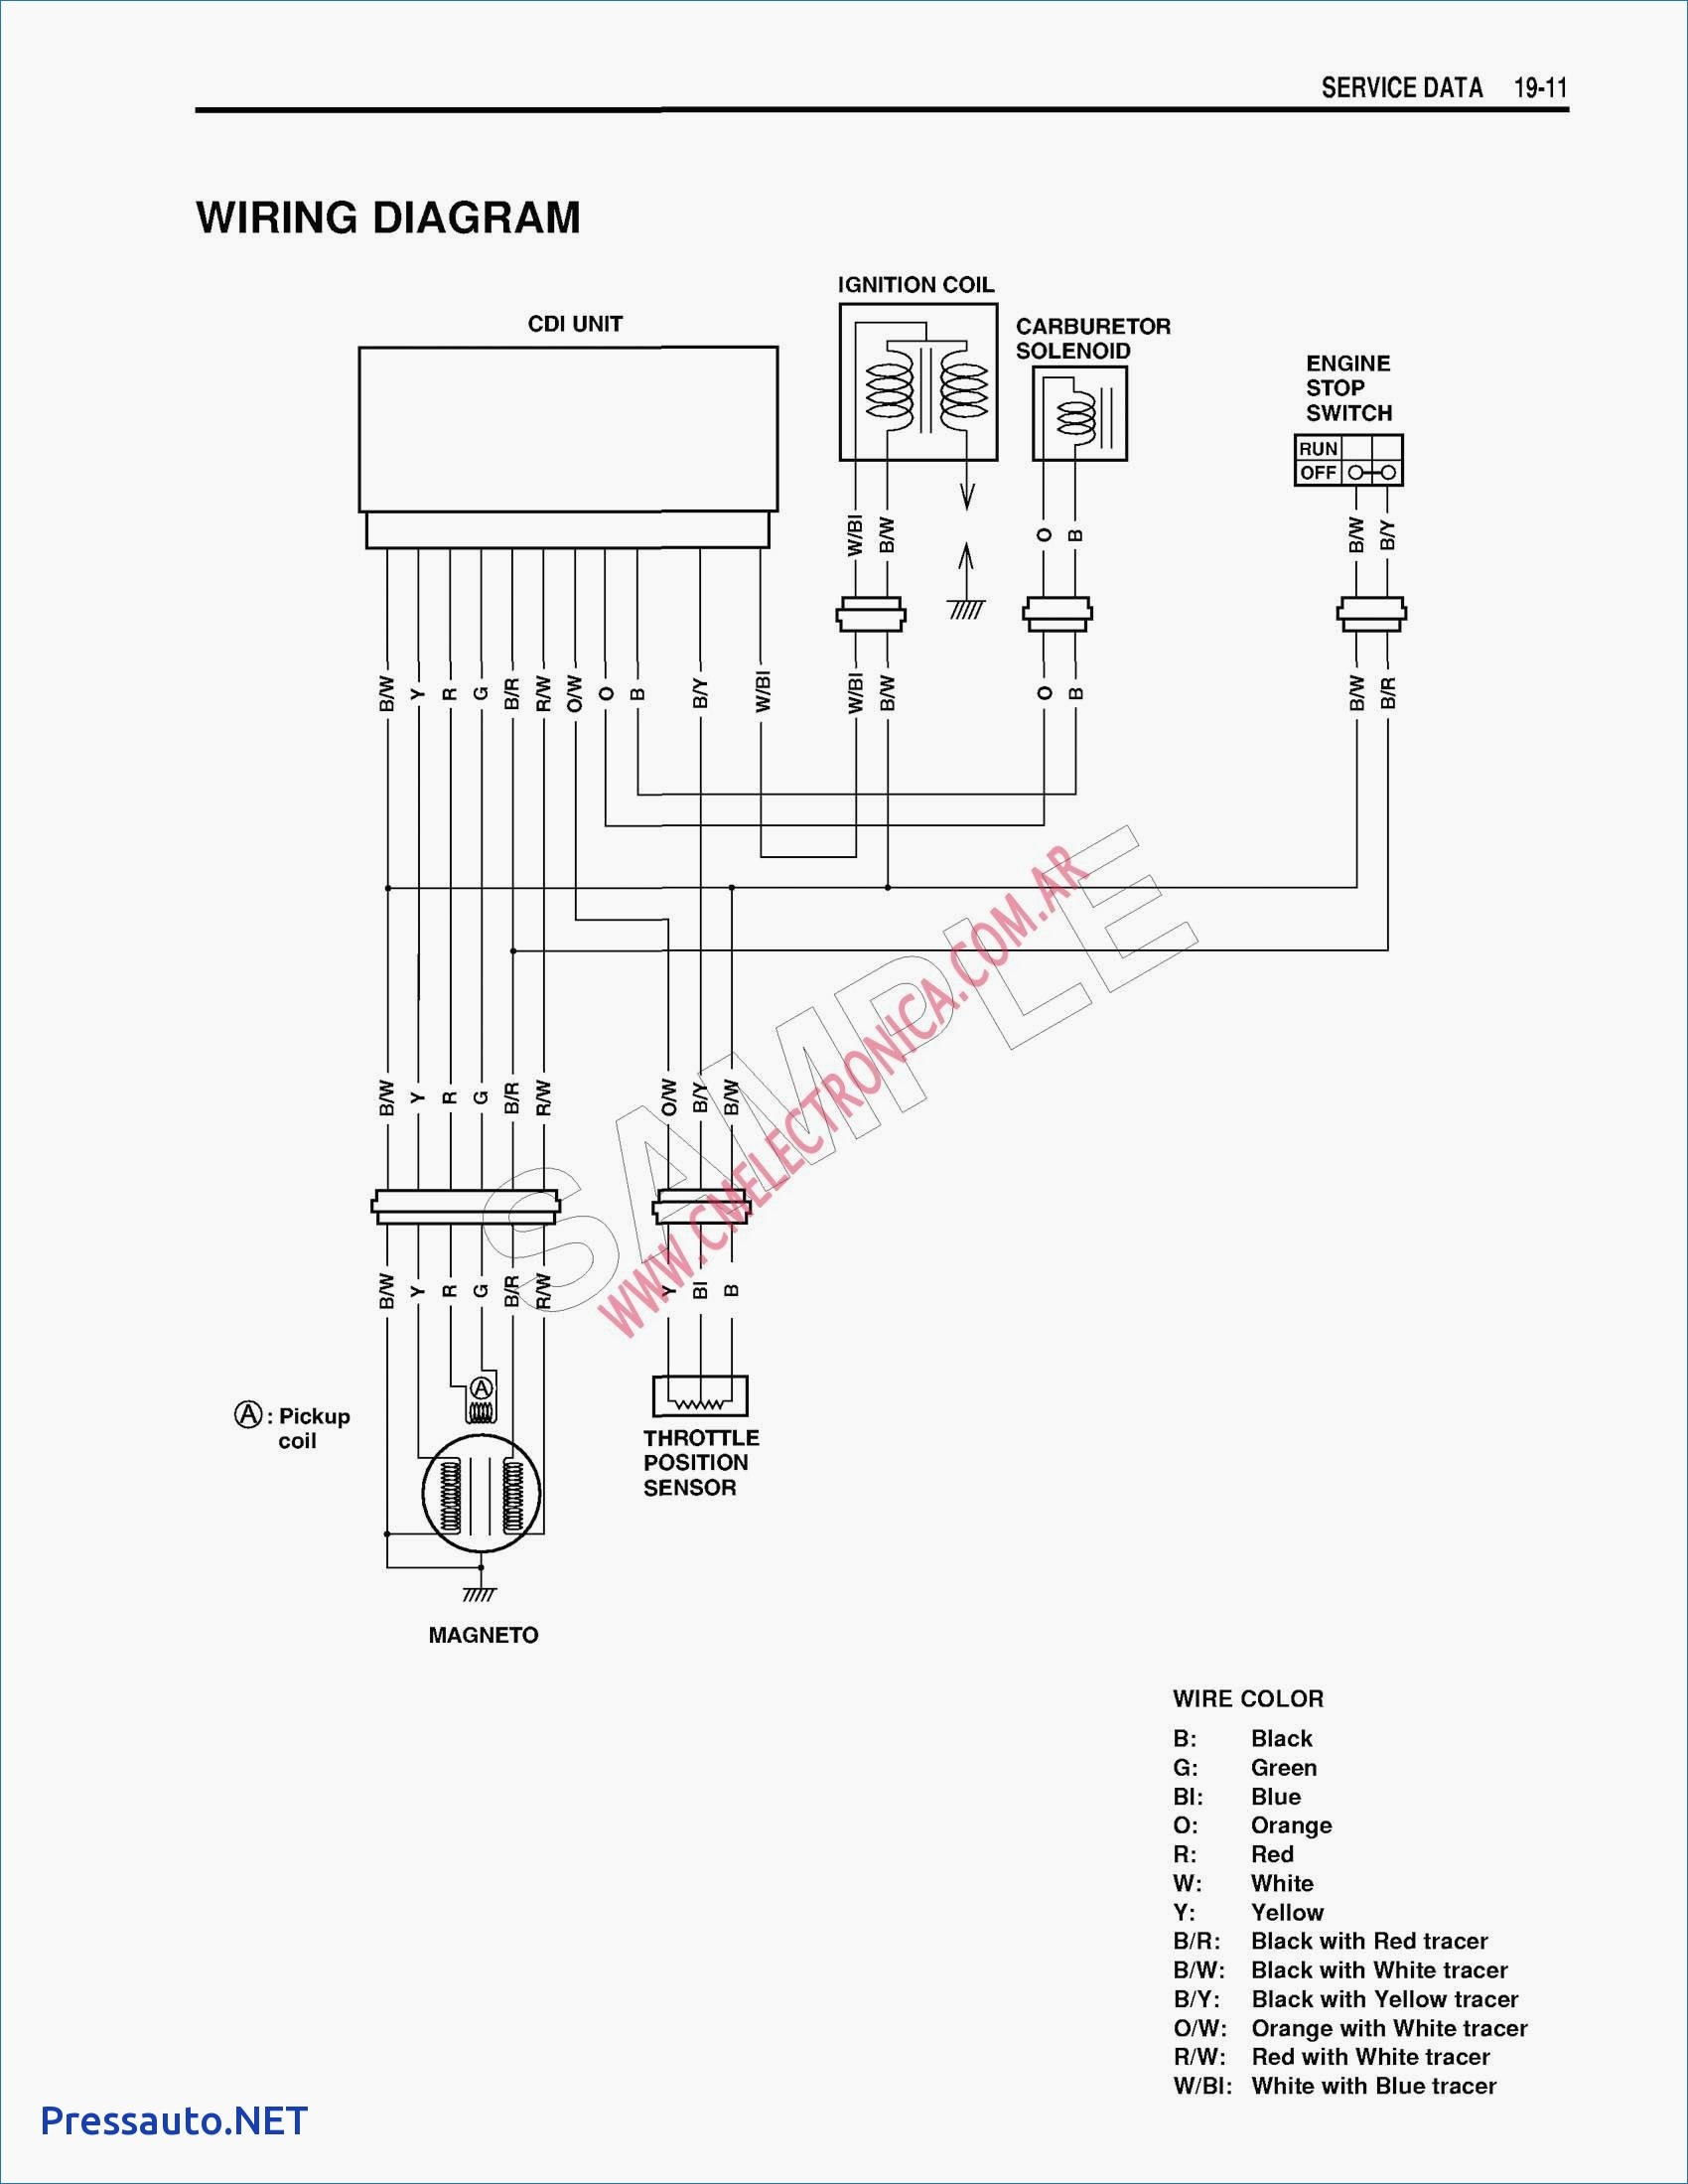 Diagram Honda Wave Dash 110 Wiring Diagram Full Version Hd Quality Wiring Diagram Diagramical Portoturisticodilovere It